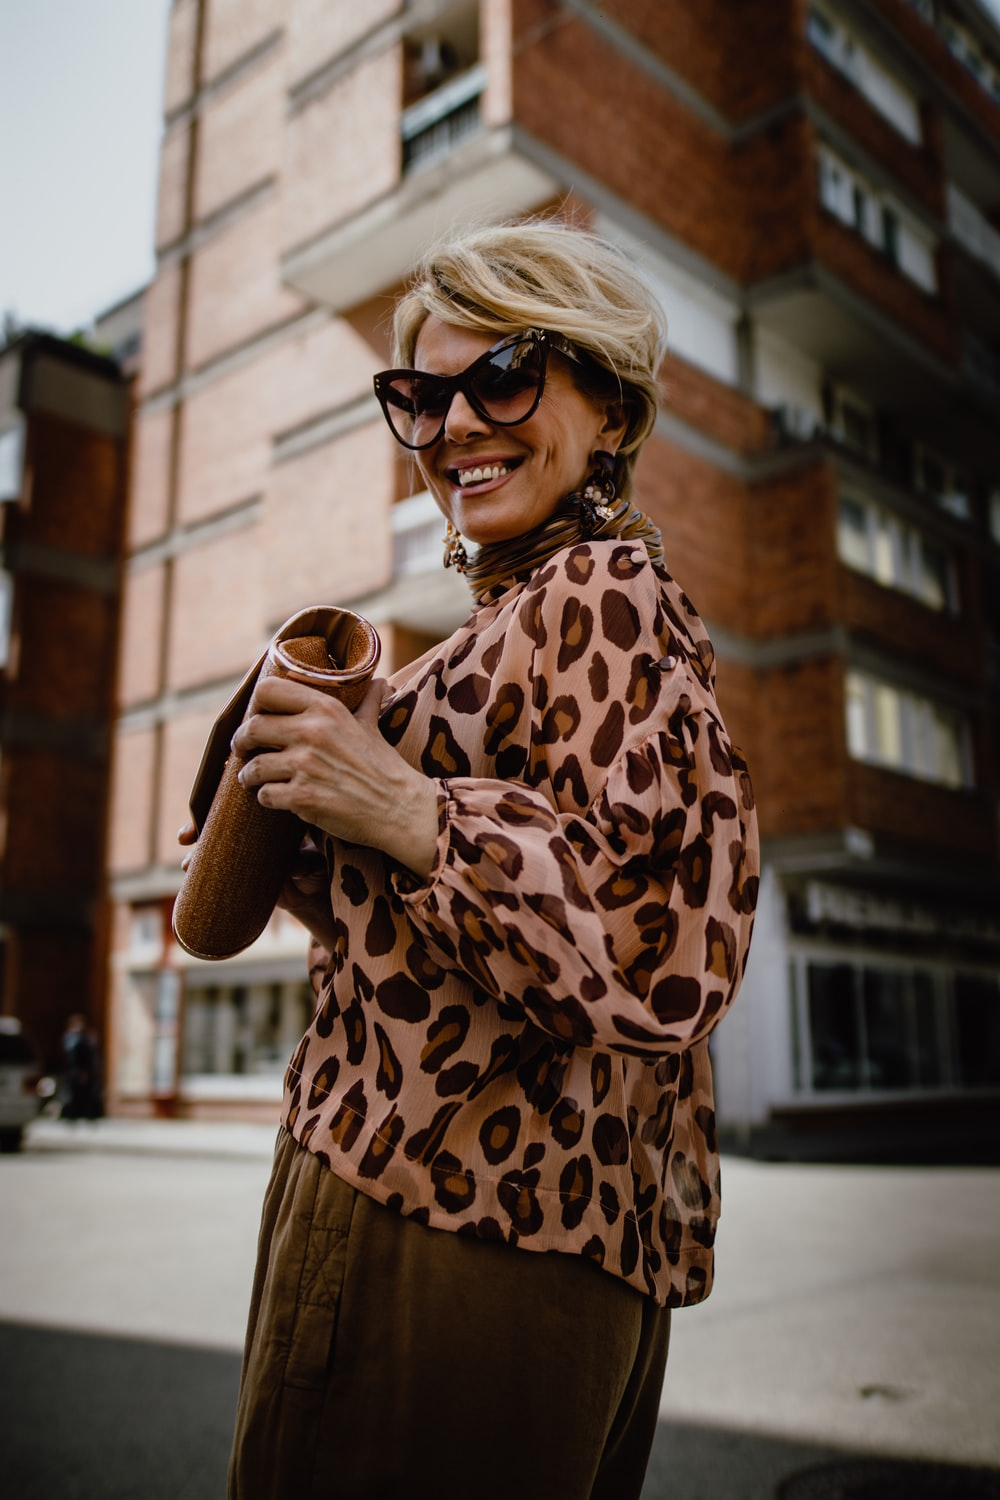 woman wearing brown and beige blouse holding brown pouch bag